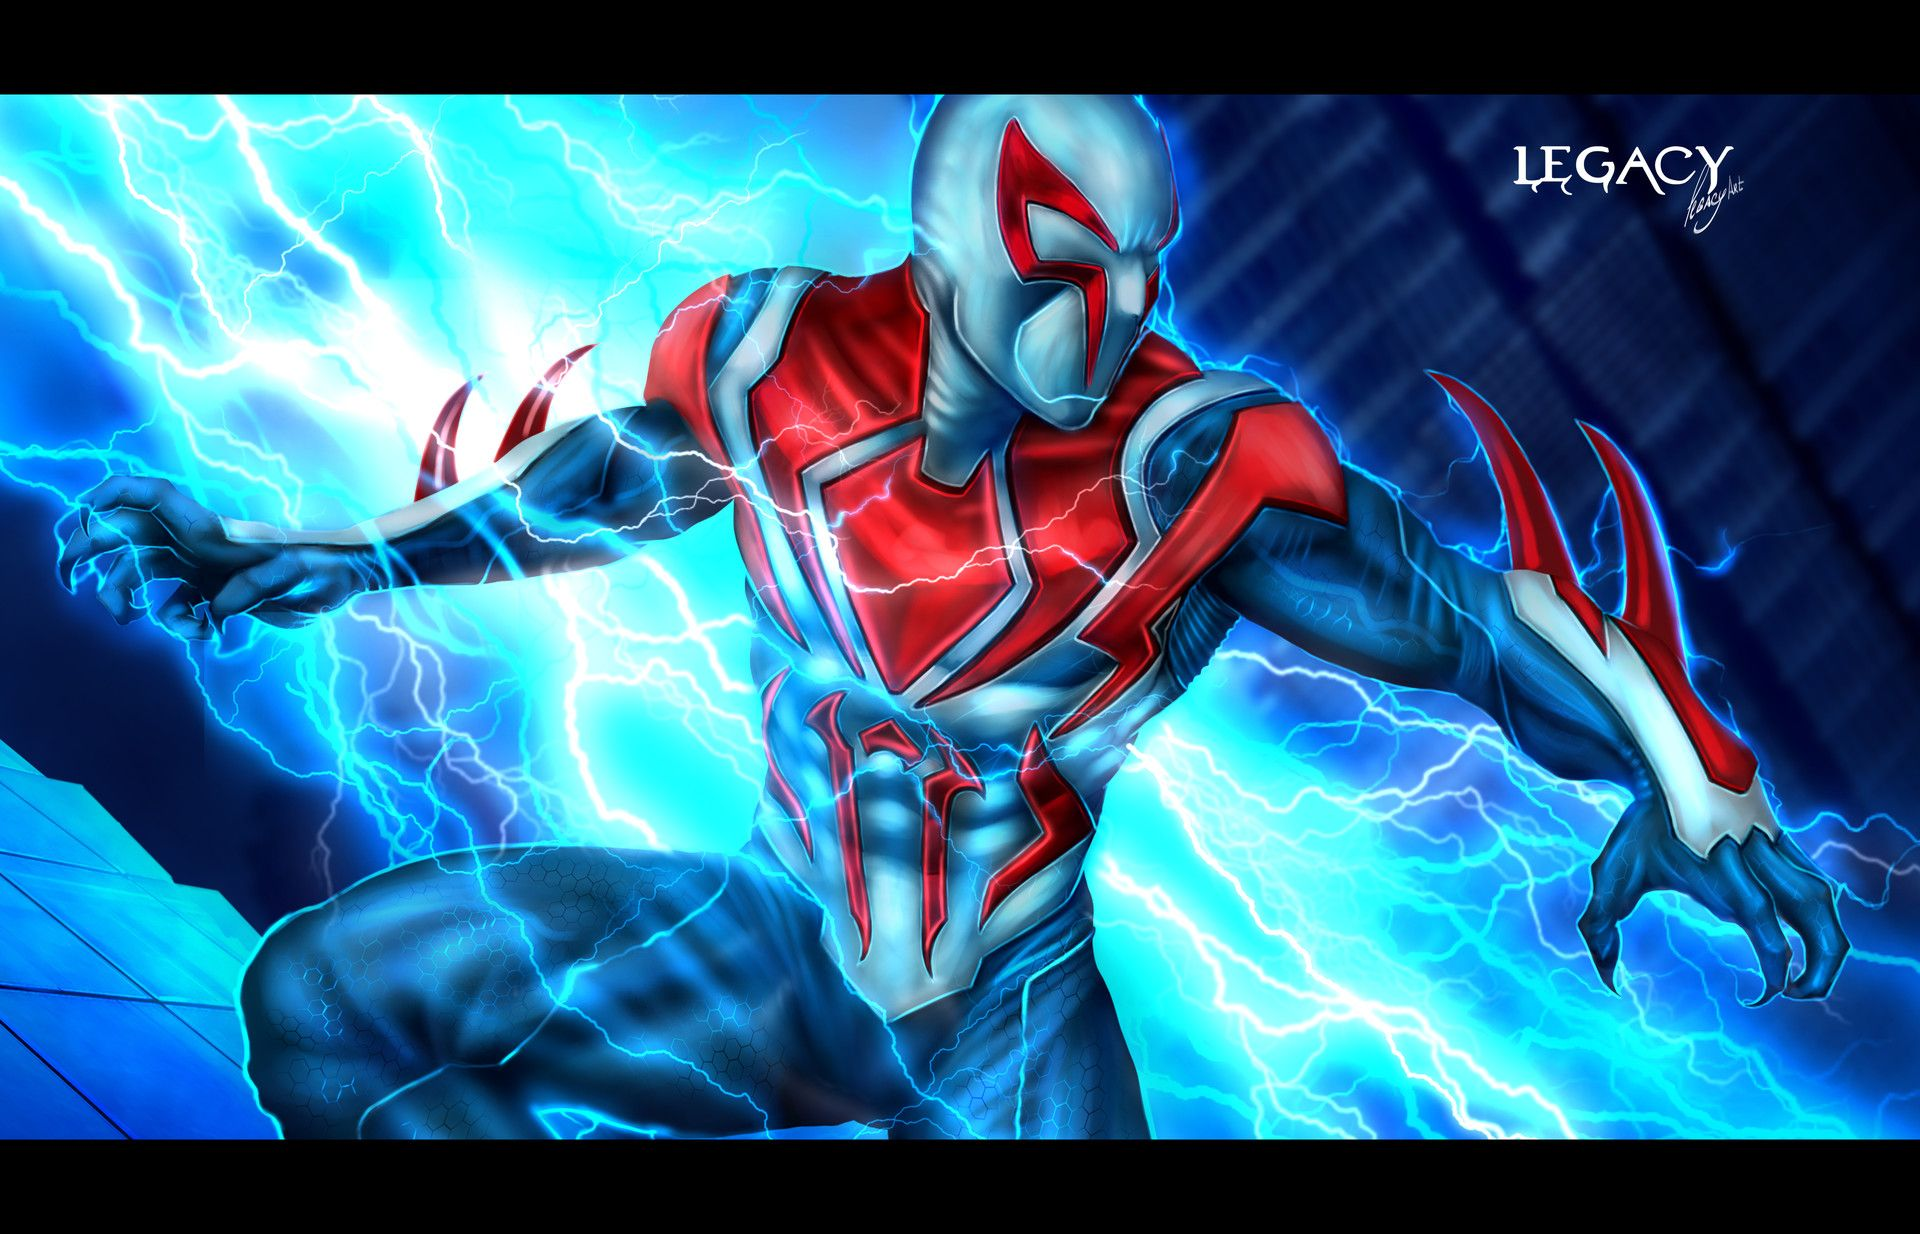 Spider Man 2099 Art Station Artstation All New All Different Spider Man 2099 Legacy 777 Spiderman Ghost Rider Marvel Hello Kitty Colouring Pages